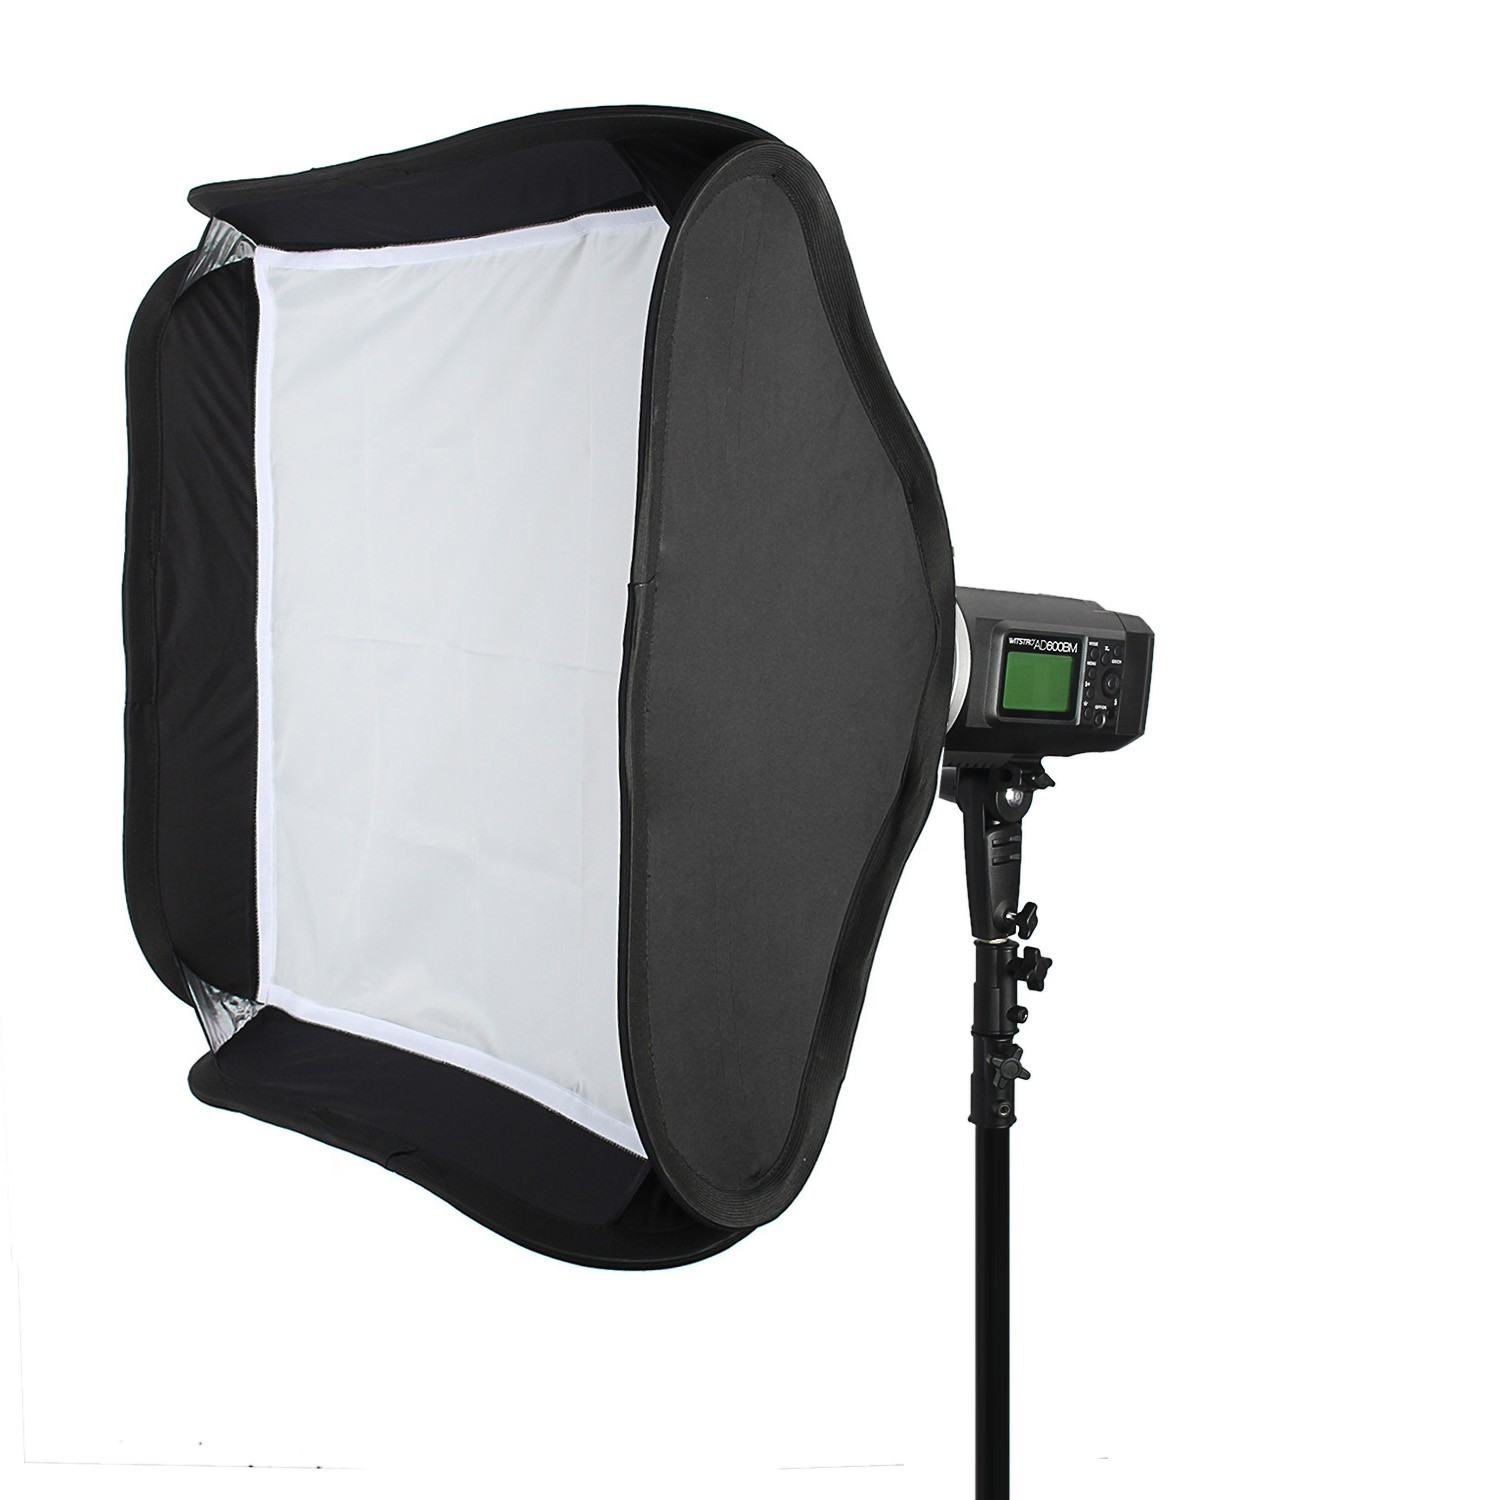 Godox Softbox 80 x 80cm Portable Collapsible Softbox Diffuser with Bowens Mount Speed ring BPS80 for Godox AD600BM AD600B photographic 60cmx60cm 24 x24 softbox diffuser reflector with speed ring bowens mount for speedlight flash